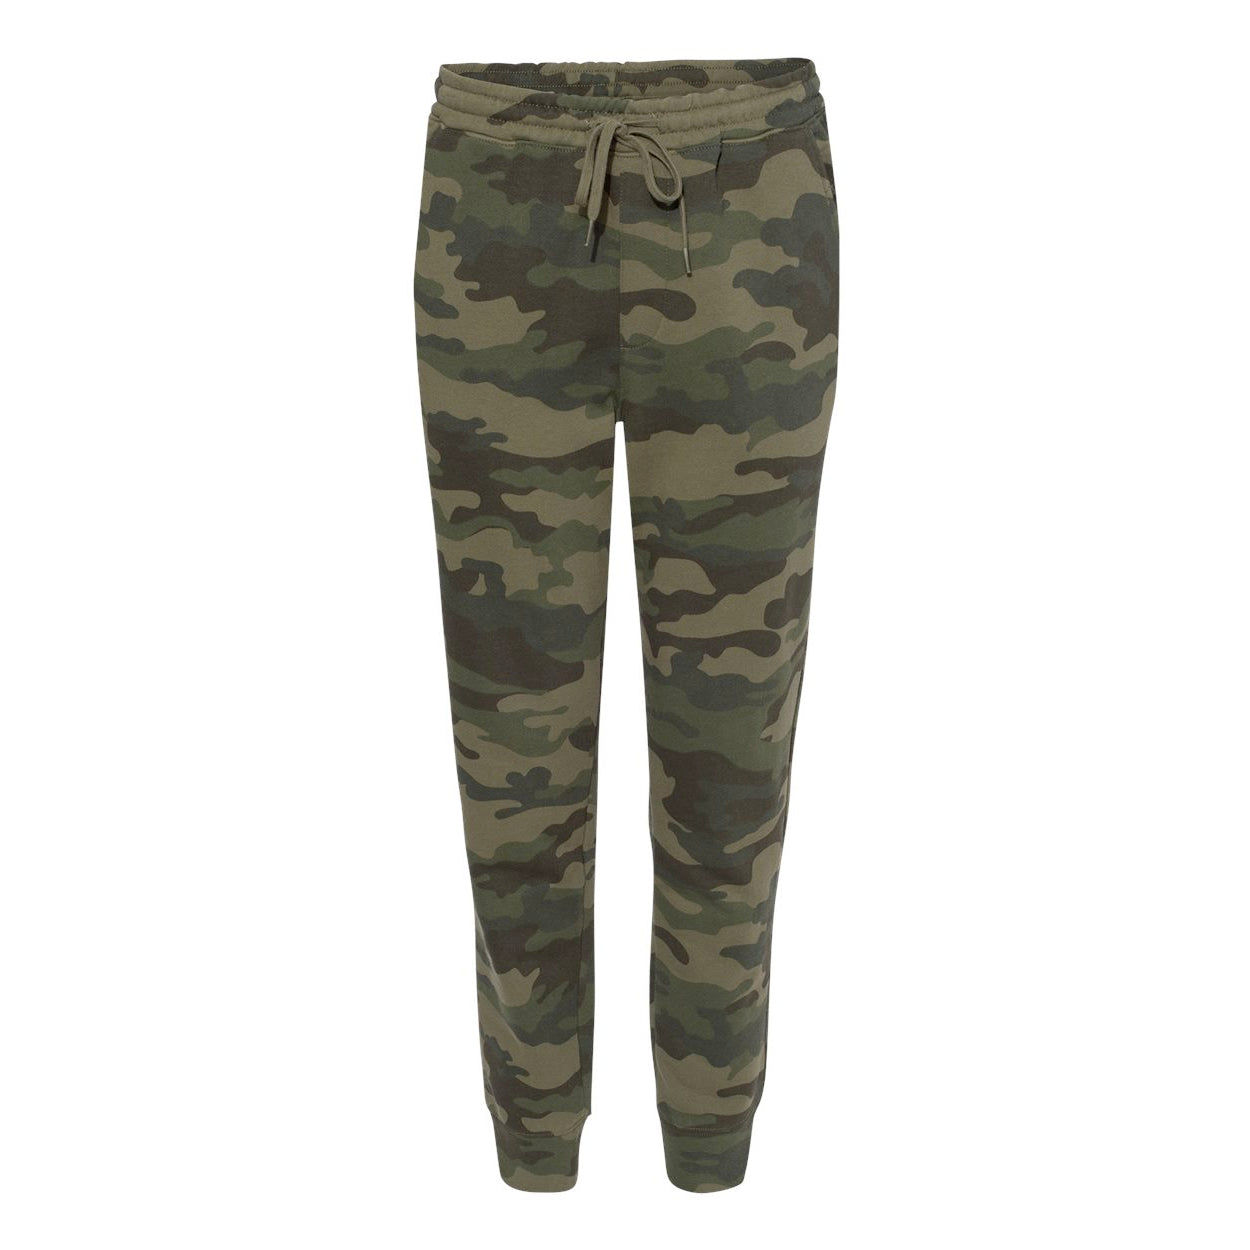 LEAD PIPE JOGGERS / DEEP FOREST CAMO French Terry Knit Joggers By Robert James